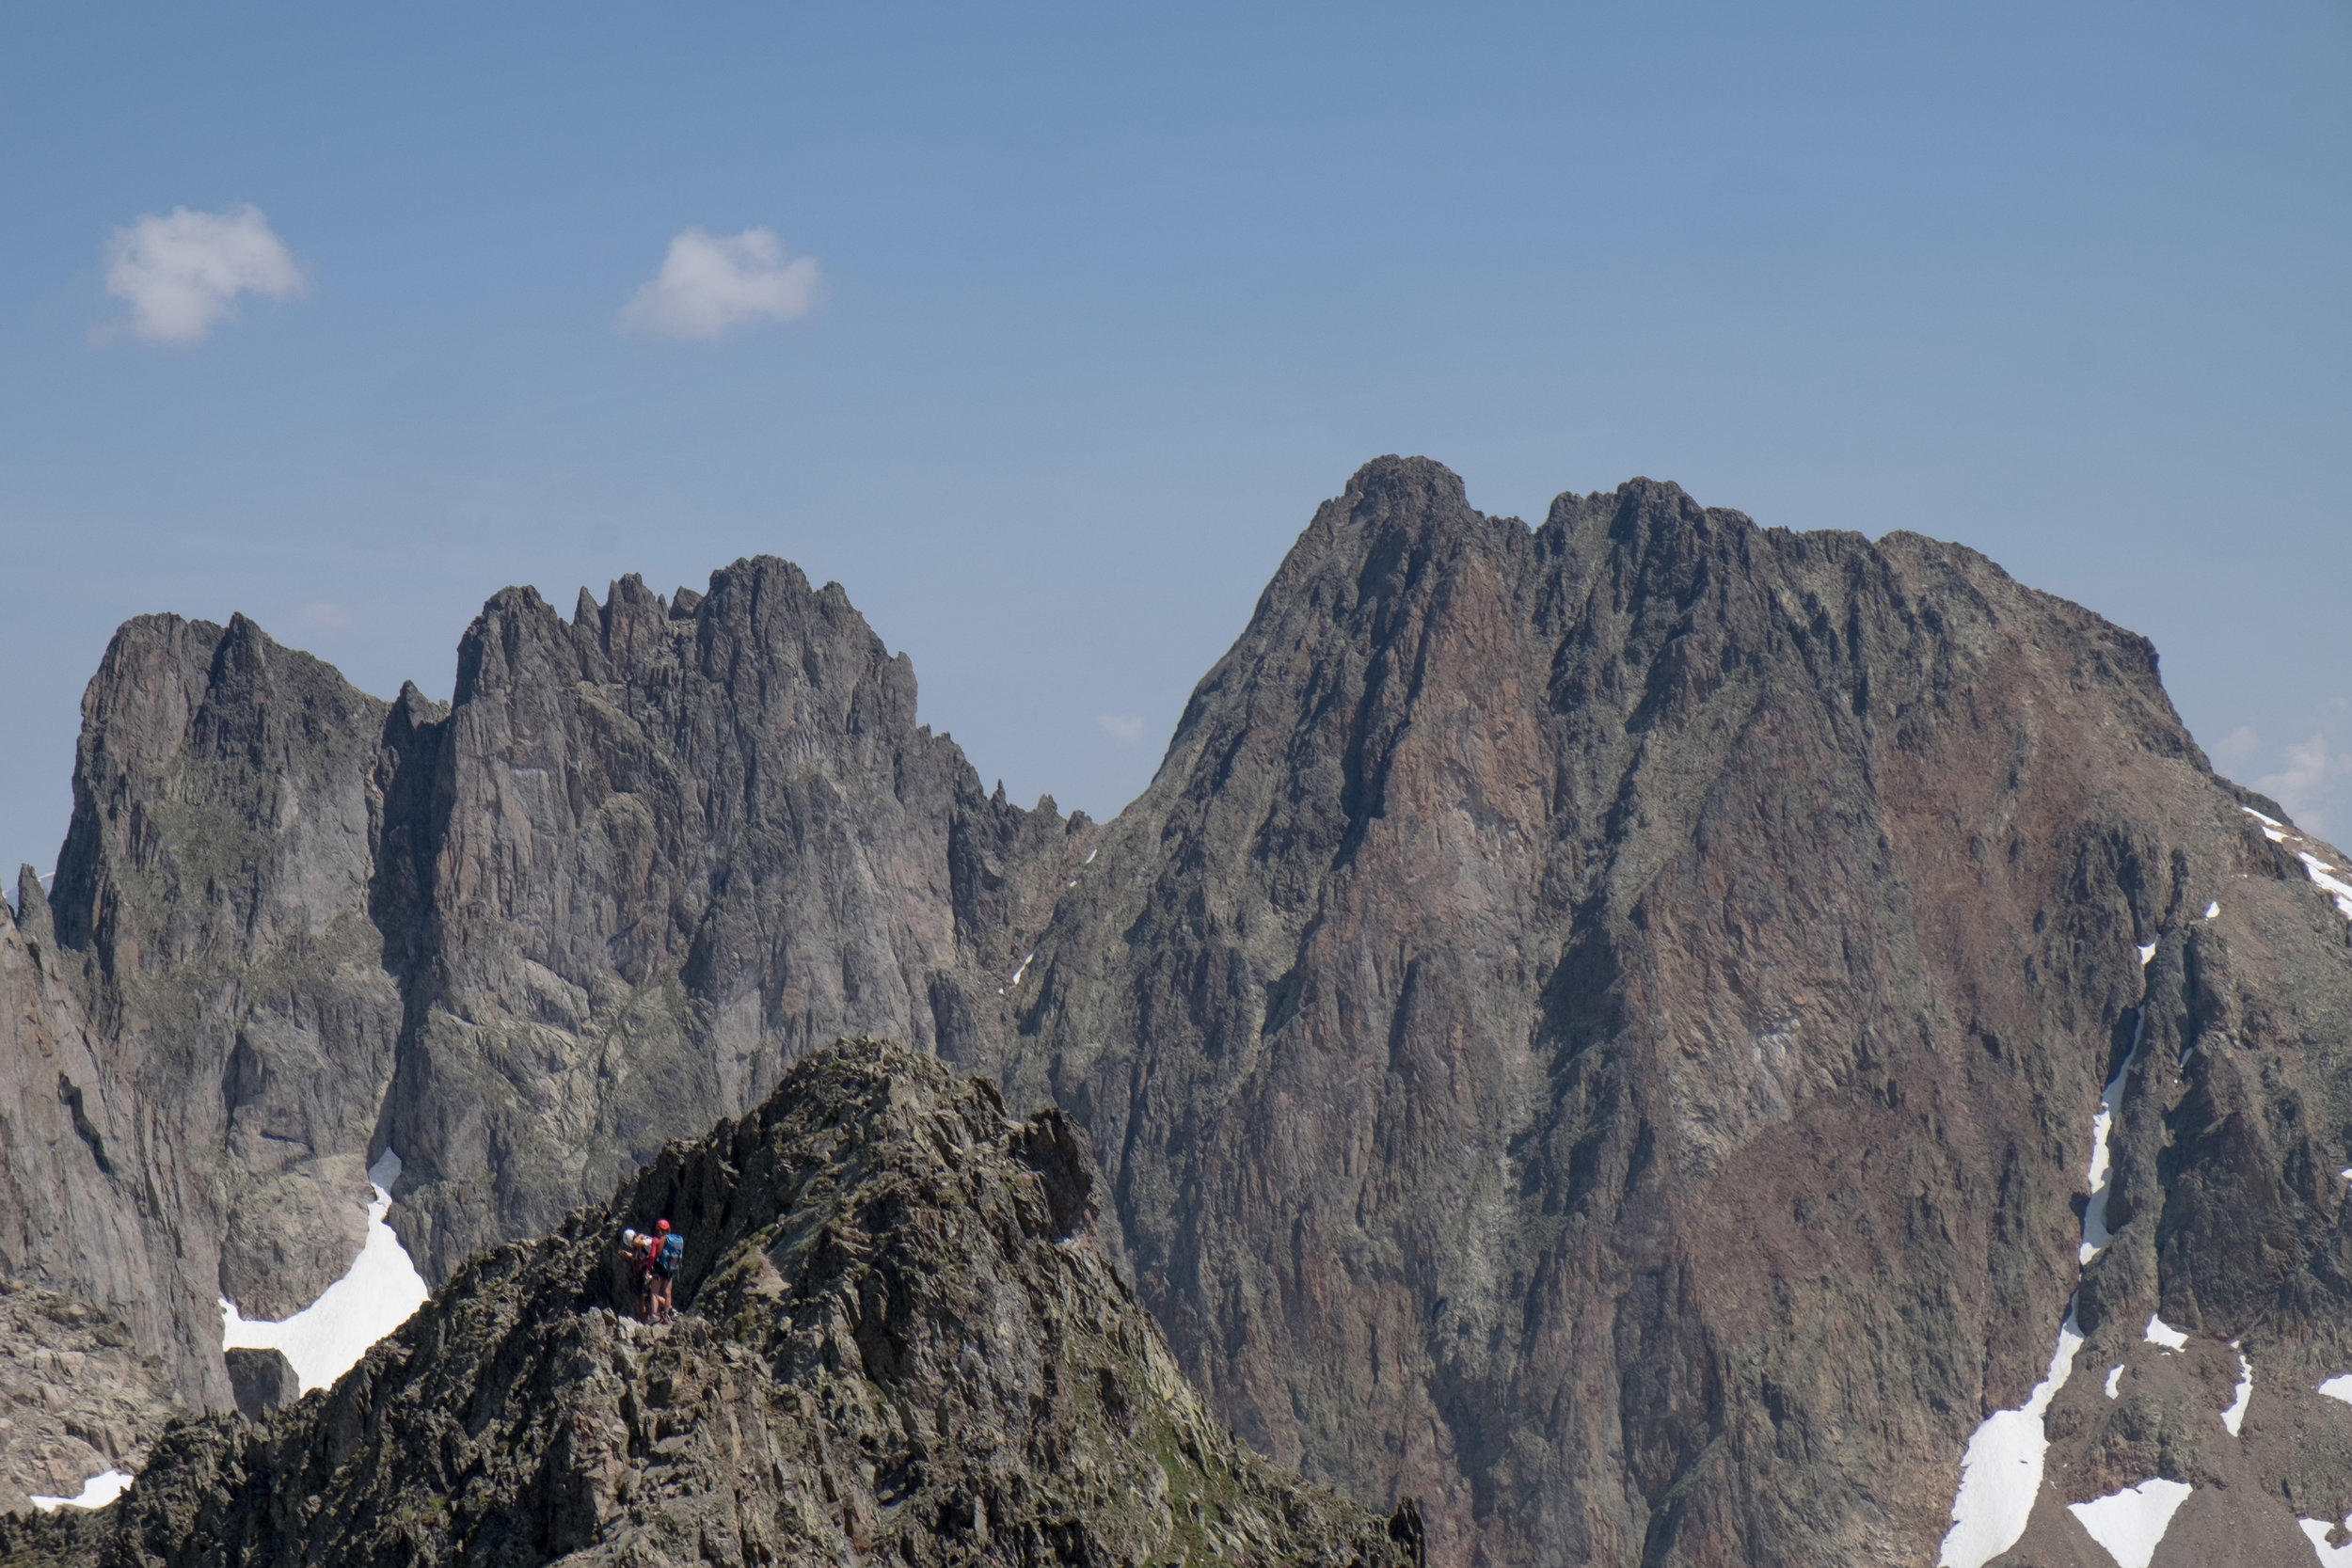 Two climbers descend from the Crochues traverse.